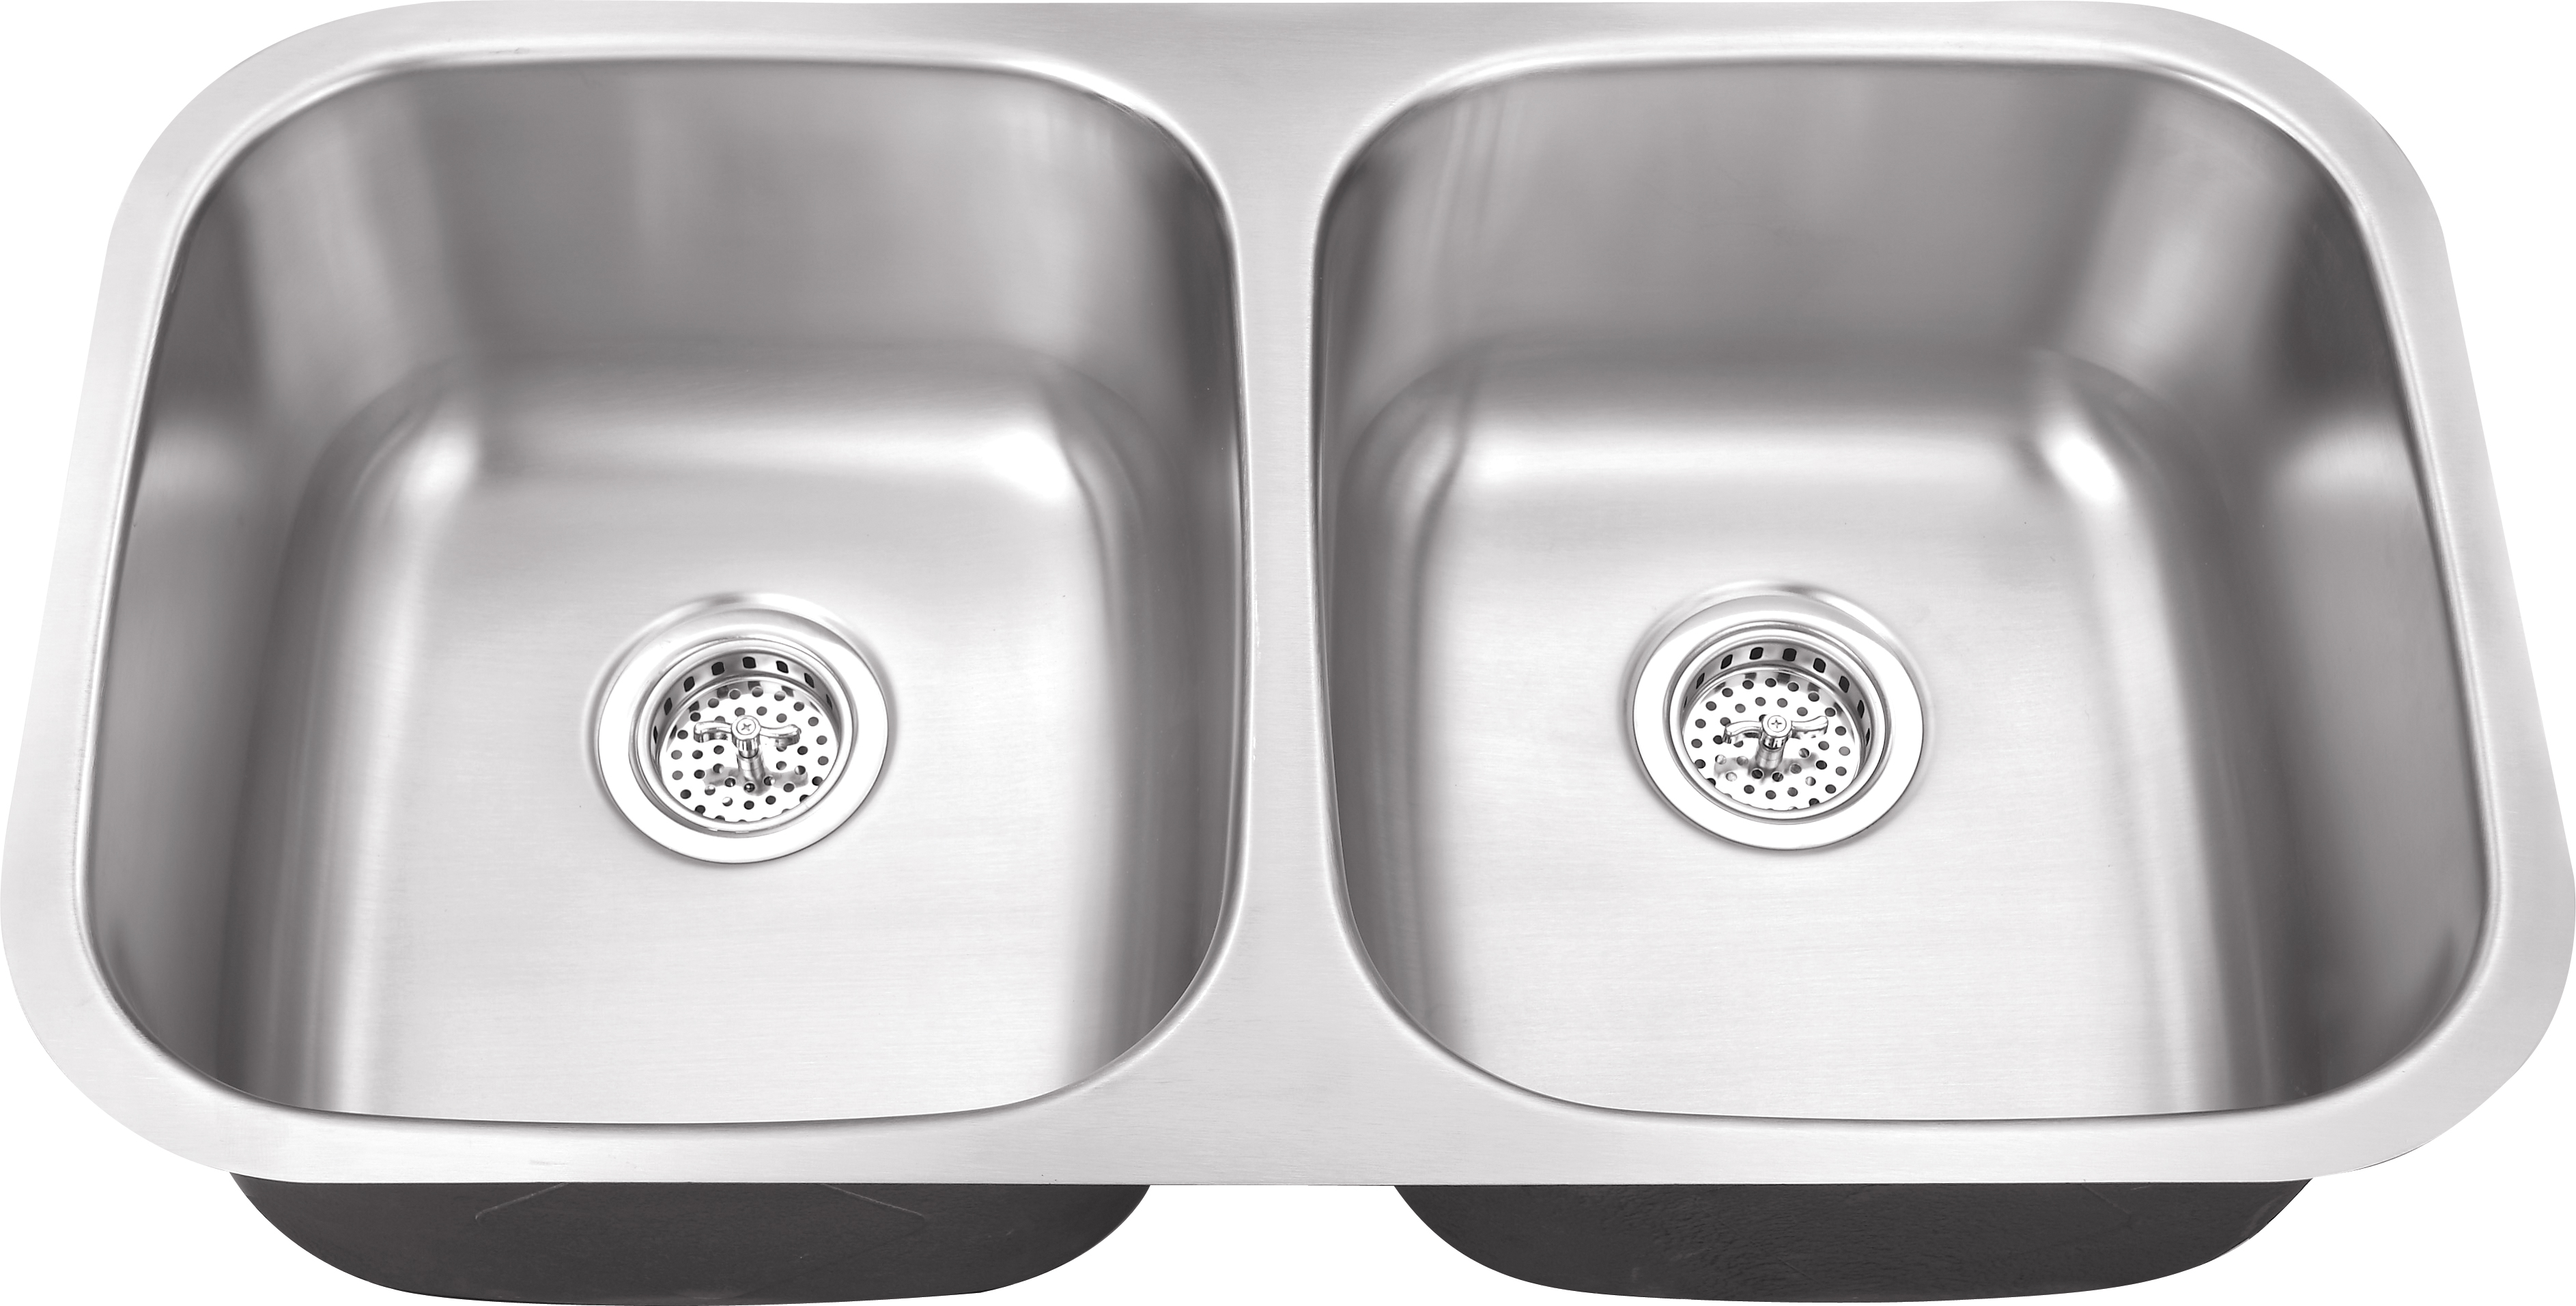 Excellent mirabelle sinks with pittsburgh stainless sink-faucets for bathroom with mirabelle undermount sink